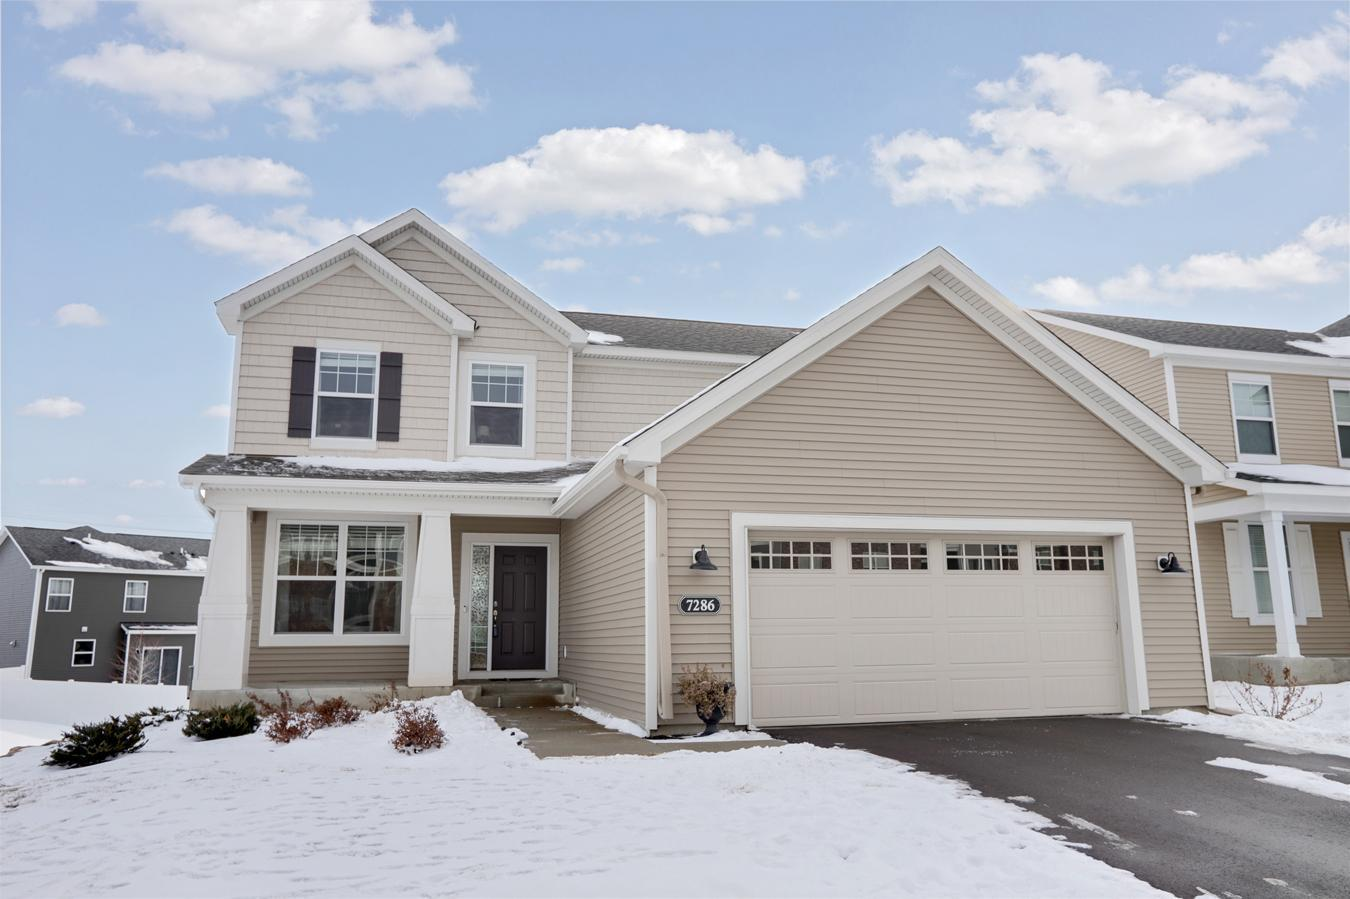 7286 181st Street W Property Photo - Lakeville, MN real estate listing